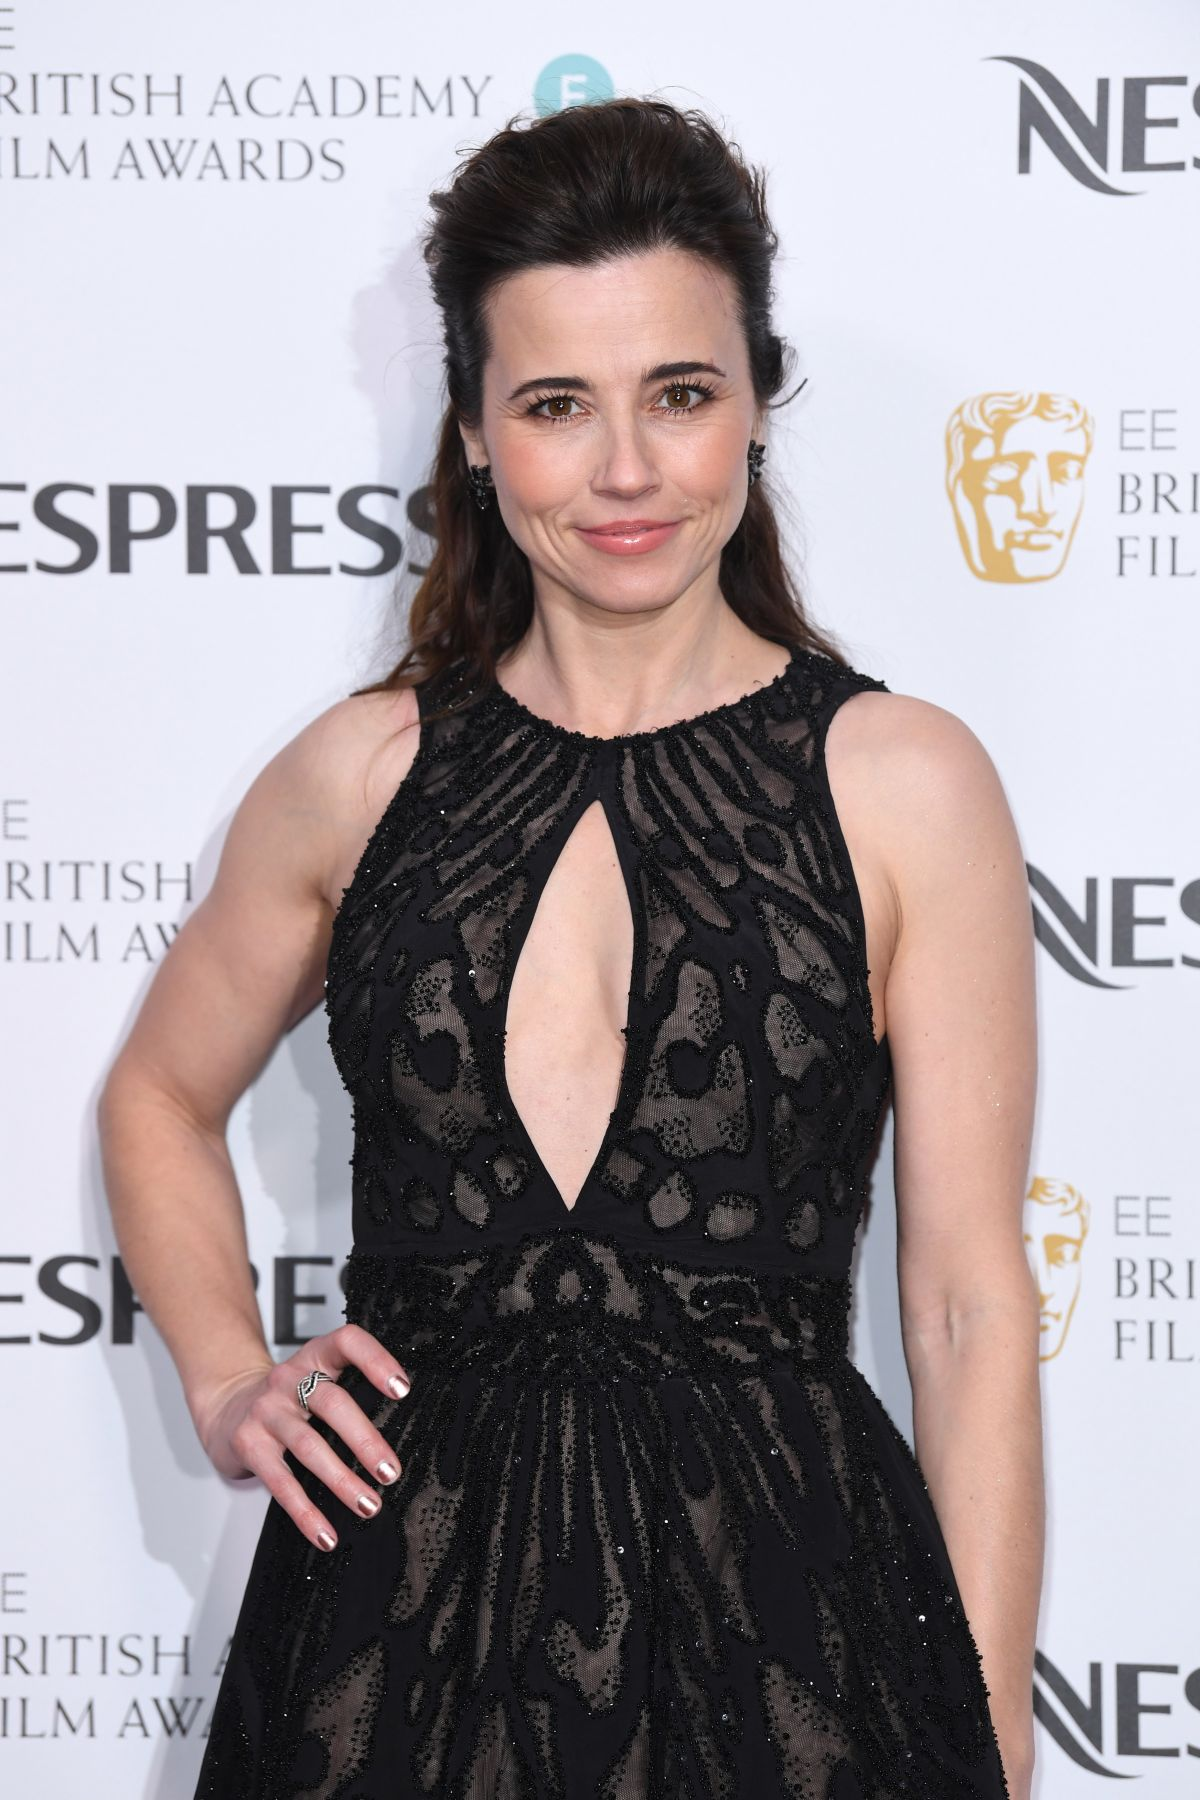 linda-cardellini-at-nespresso-bafta-nominees-party-in-london-02-09-2019-1.jpg